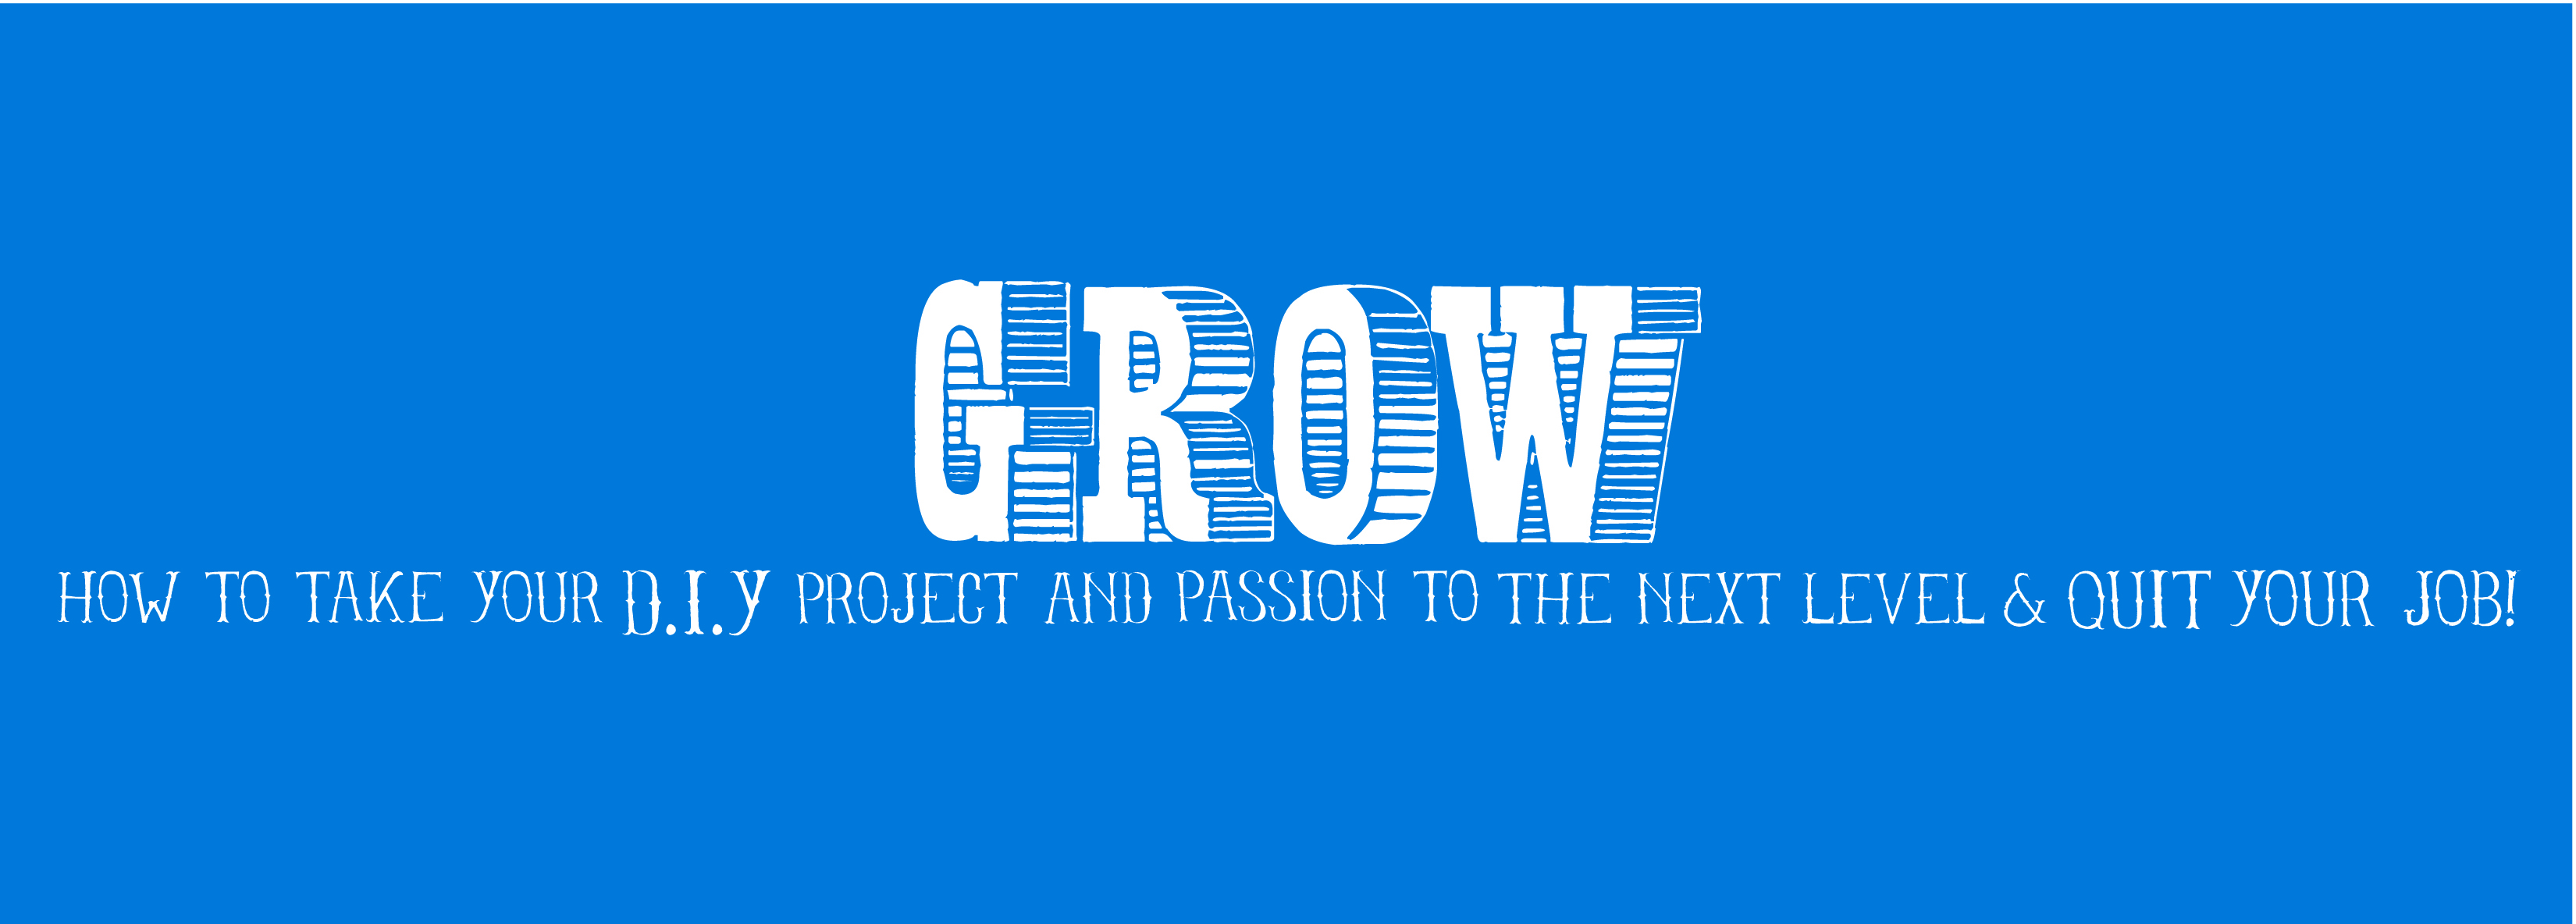 Tumblrstaticgrowheaderg grow how to take your do it yourself project and passion to the next level and quit your job is a practical field guide for creative people with great solutioingenieria Choice Image